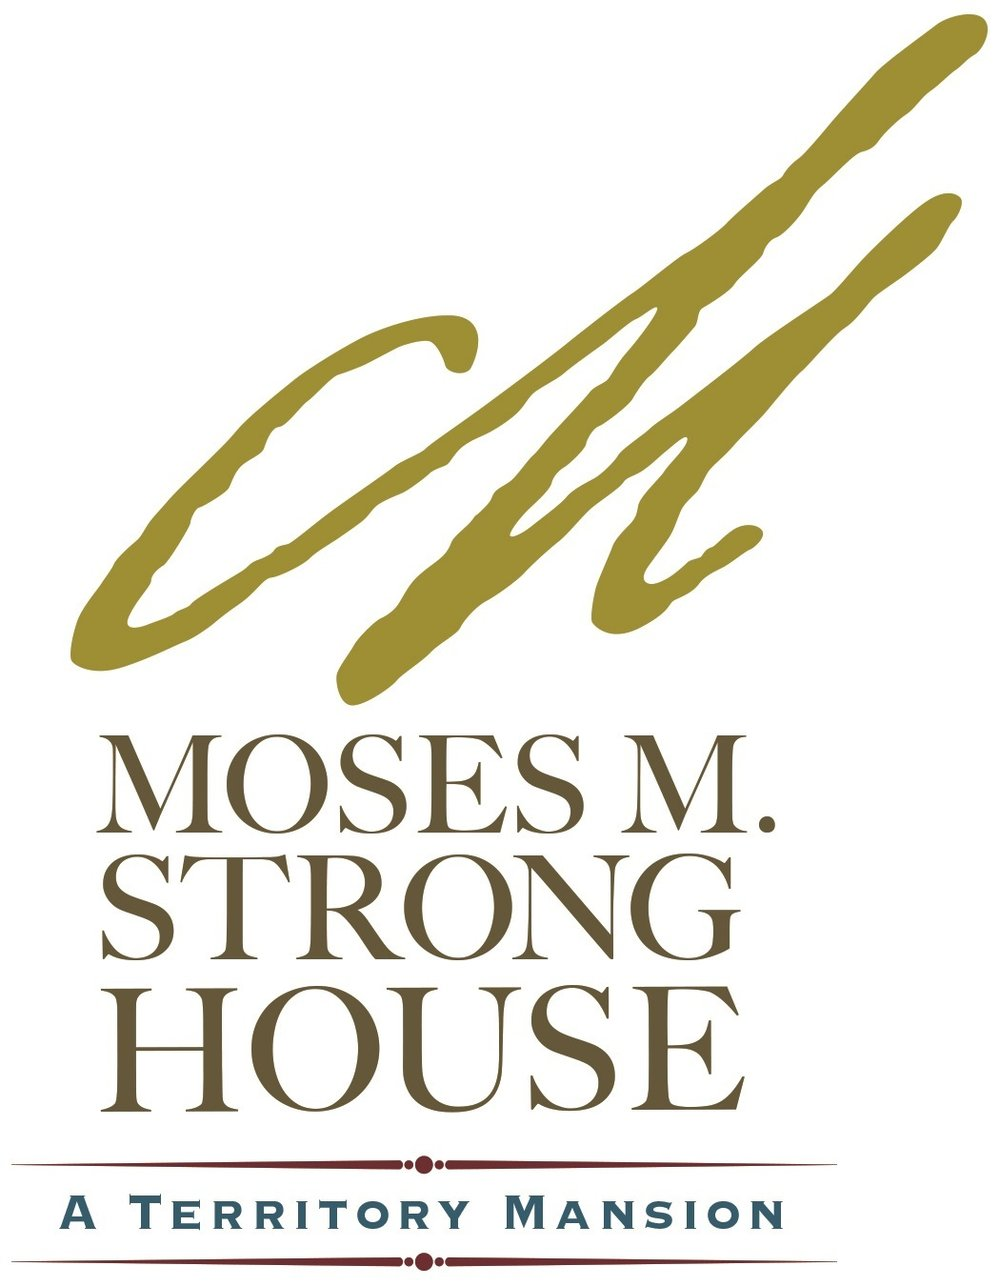 The Moses Strong House